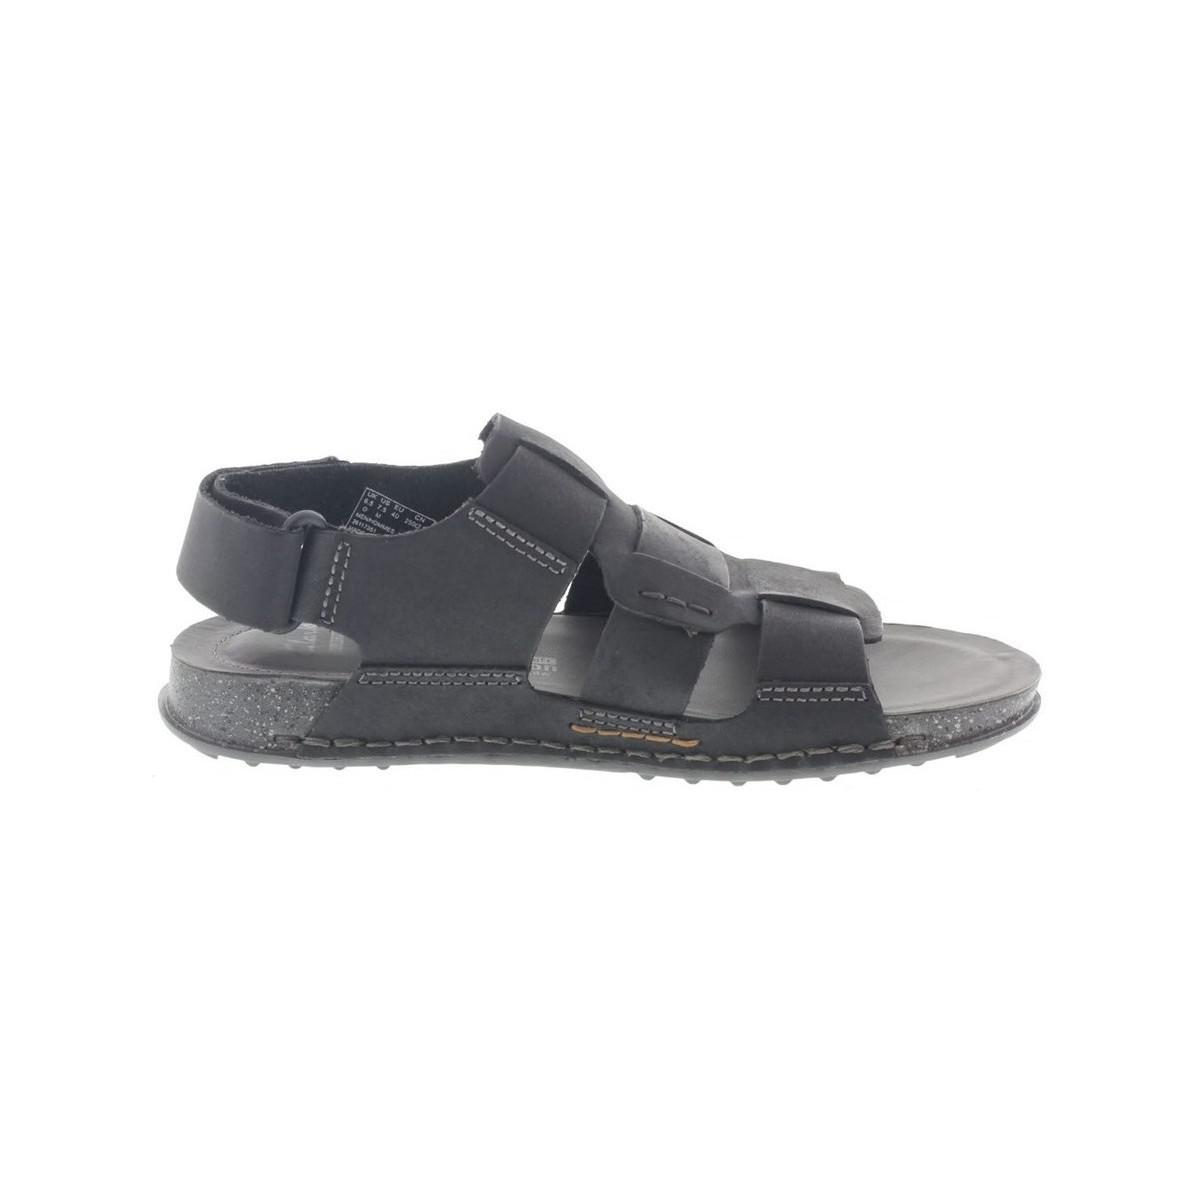 b2cdfcd6f Clarks Keften Men s Sandals In Black in Black for Men - Lyst